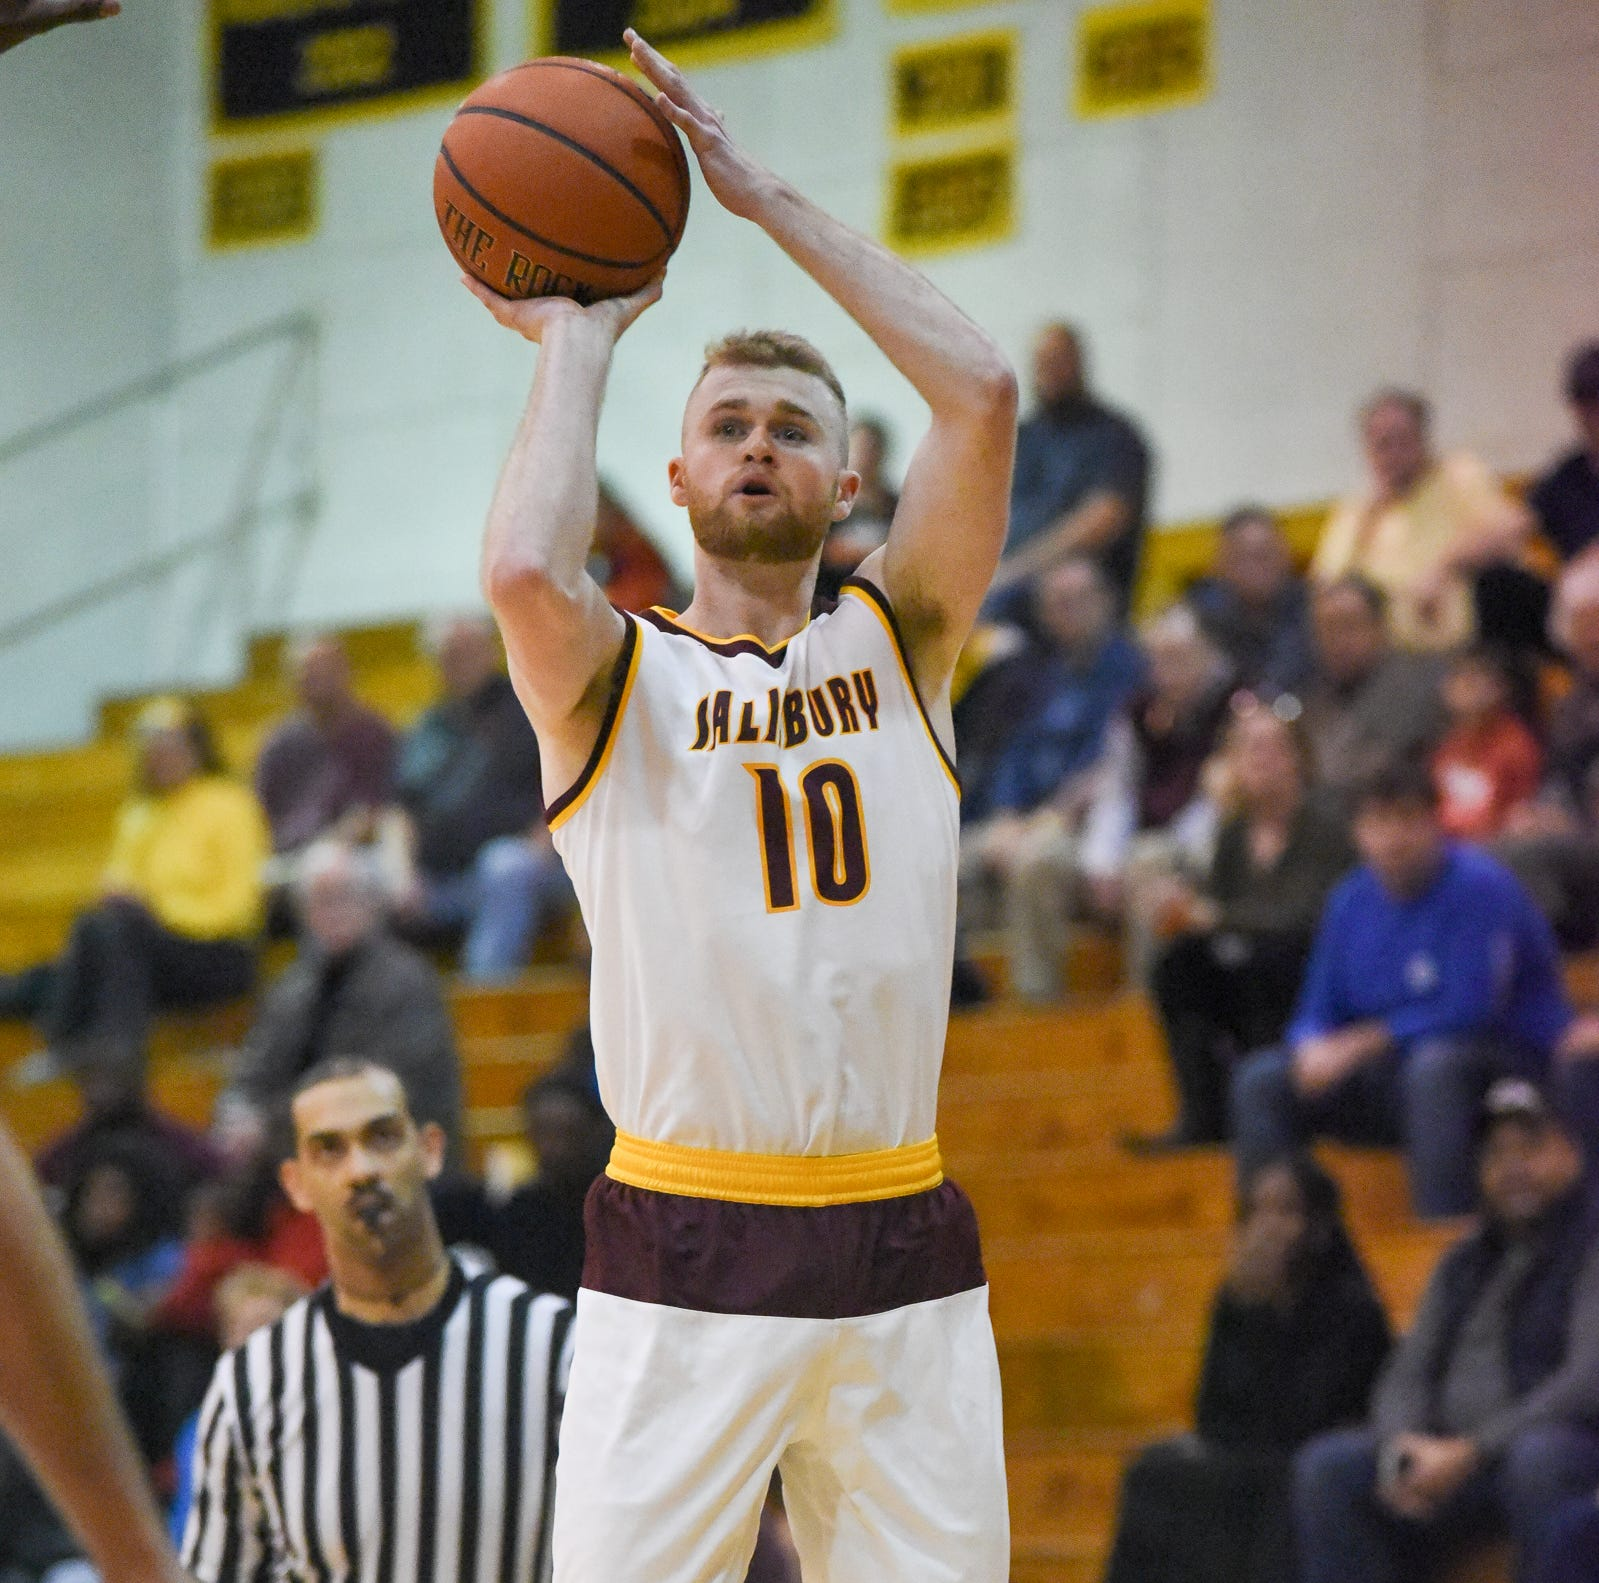 Salisbury University men's basketball player dies from cancer